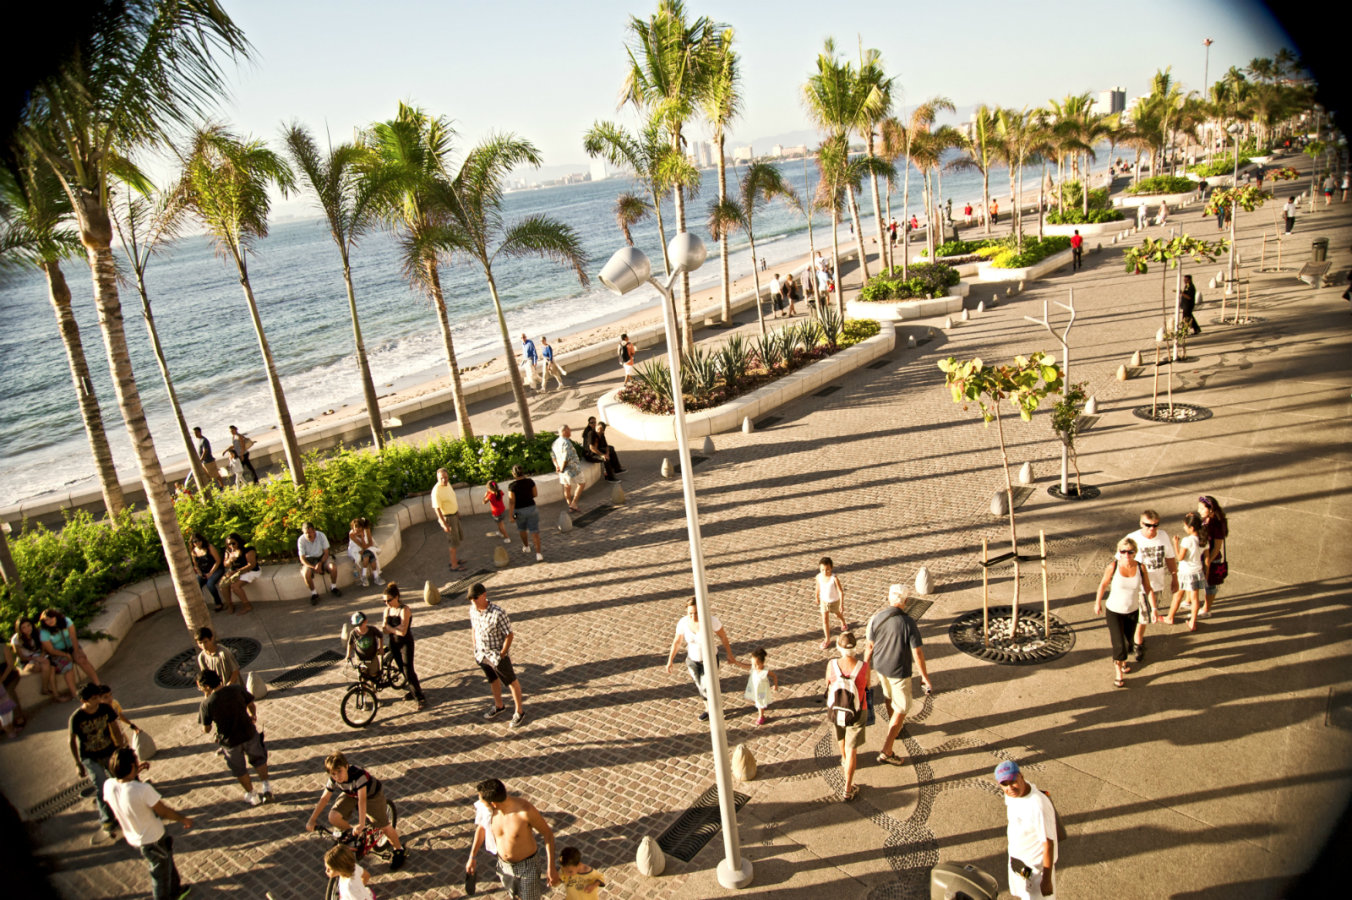 Best places to enjoy shopping in Puerto Vallarta